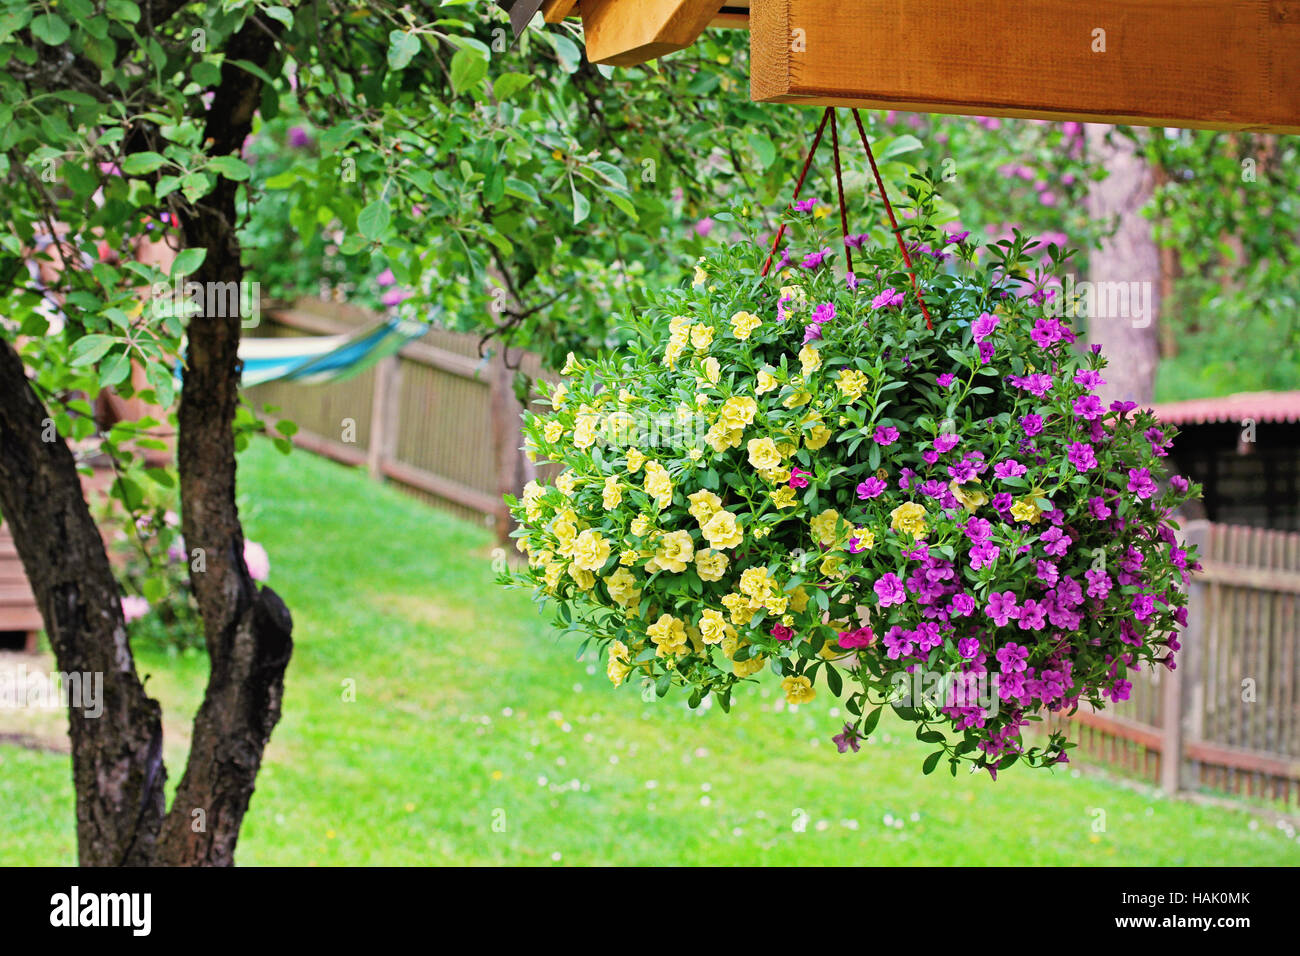 flower pot with colorful petunia hanging in backyard - Stock Image